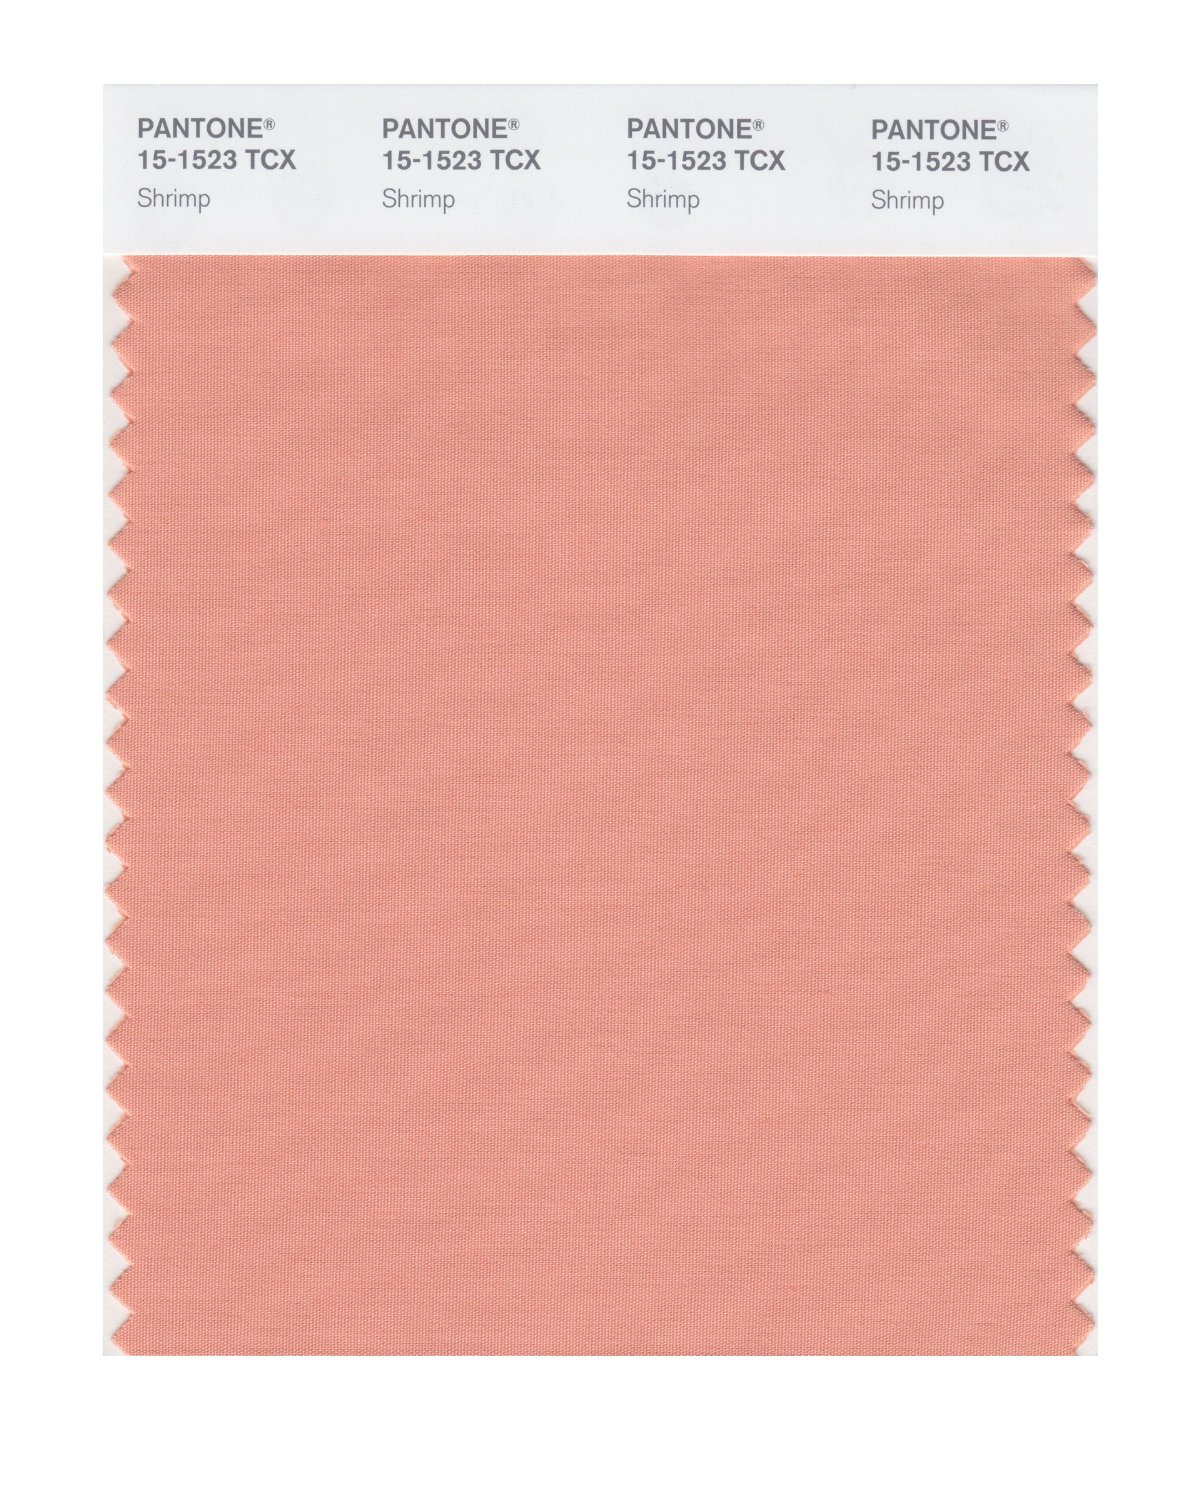 Pantone Smart Swatch 15-1523 Shrimp